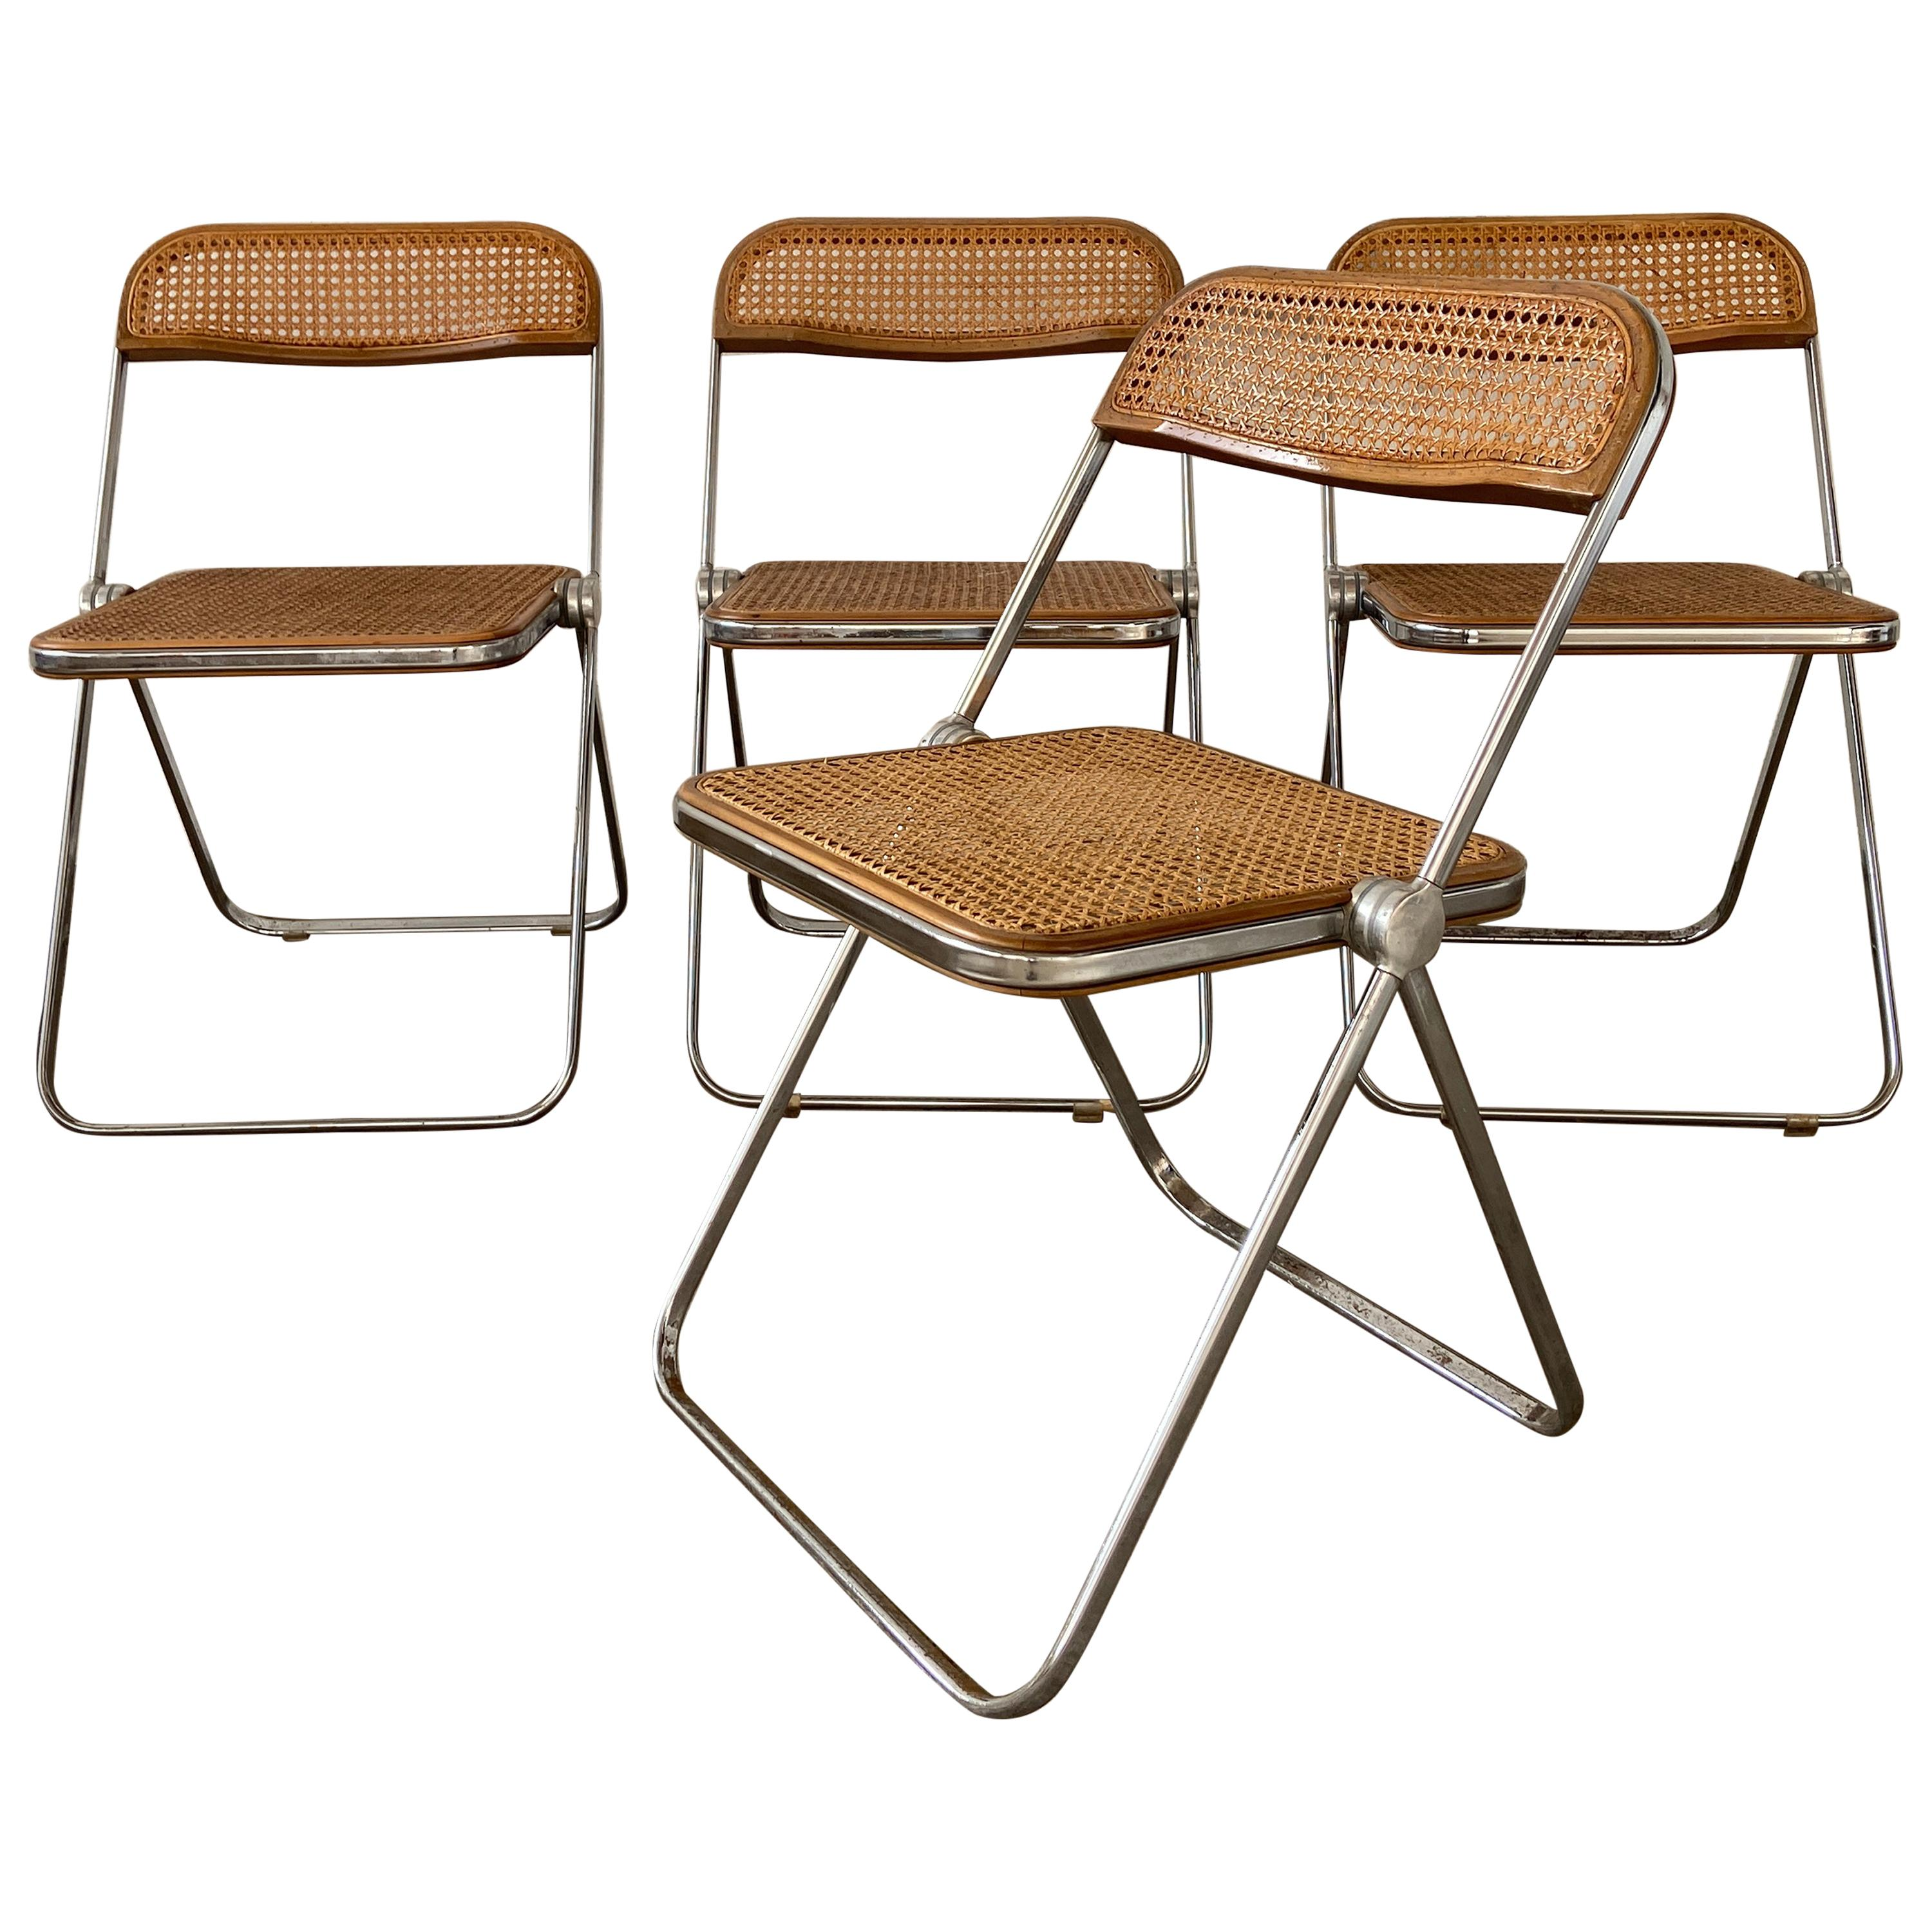 "Mid-Century Modern Italian Set of 4 ""Plia"" Folding Chairs by Giancarlo Piretti"